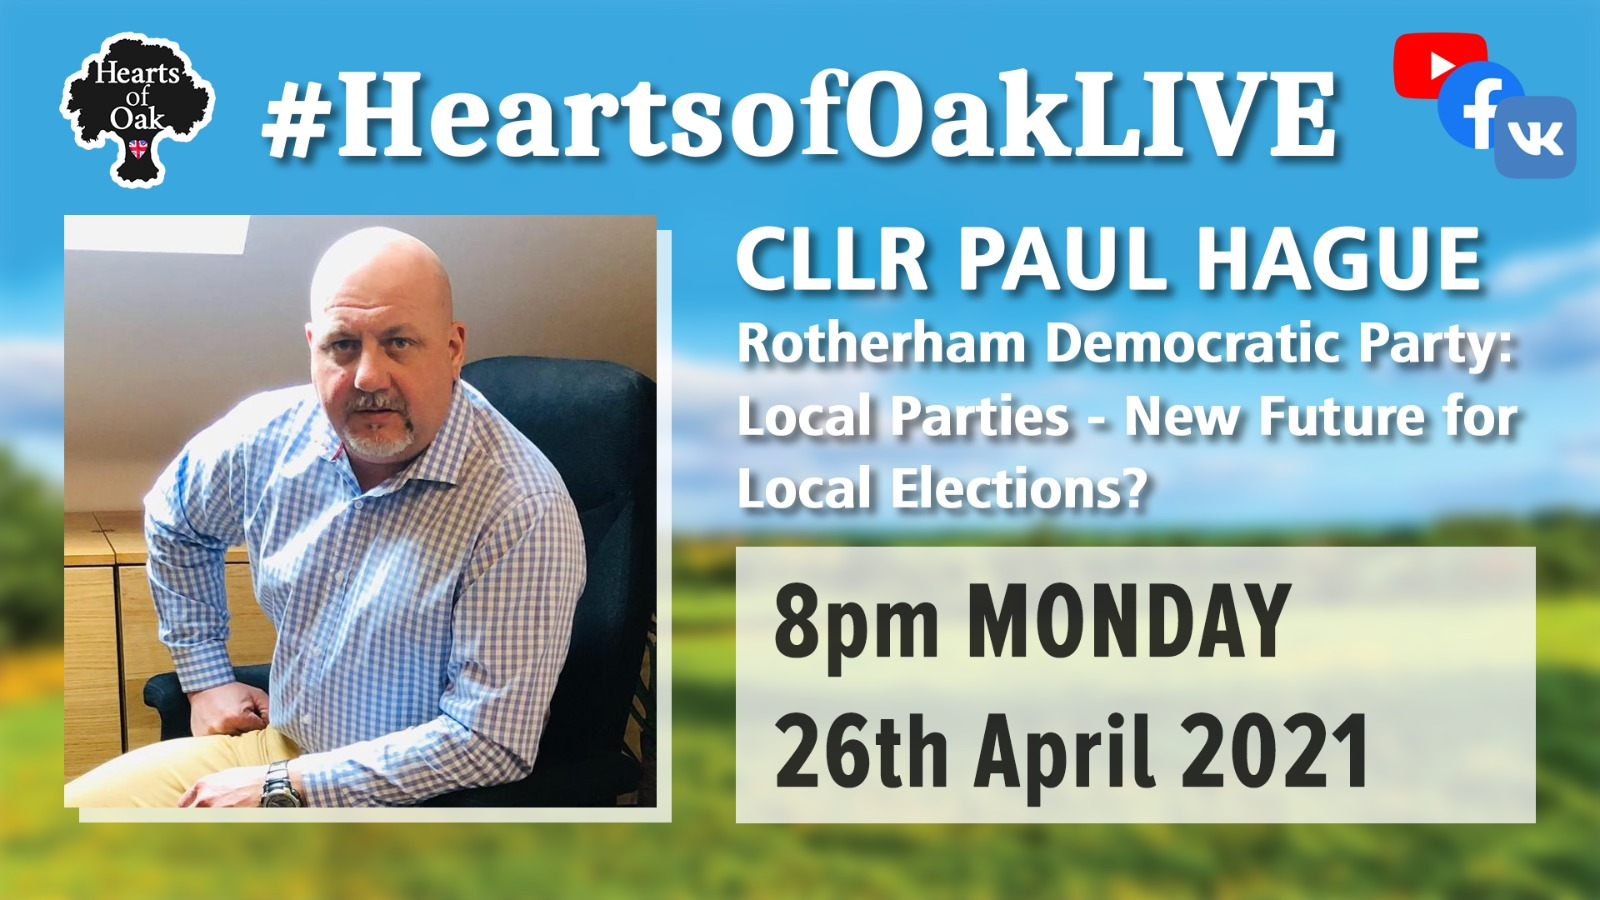 Cllr Paul Hague: Local Parties - New Future for Local Elections?